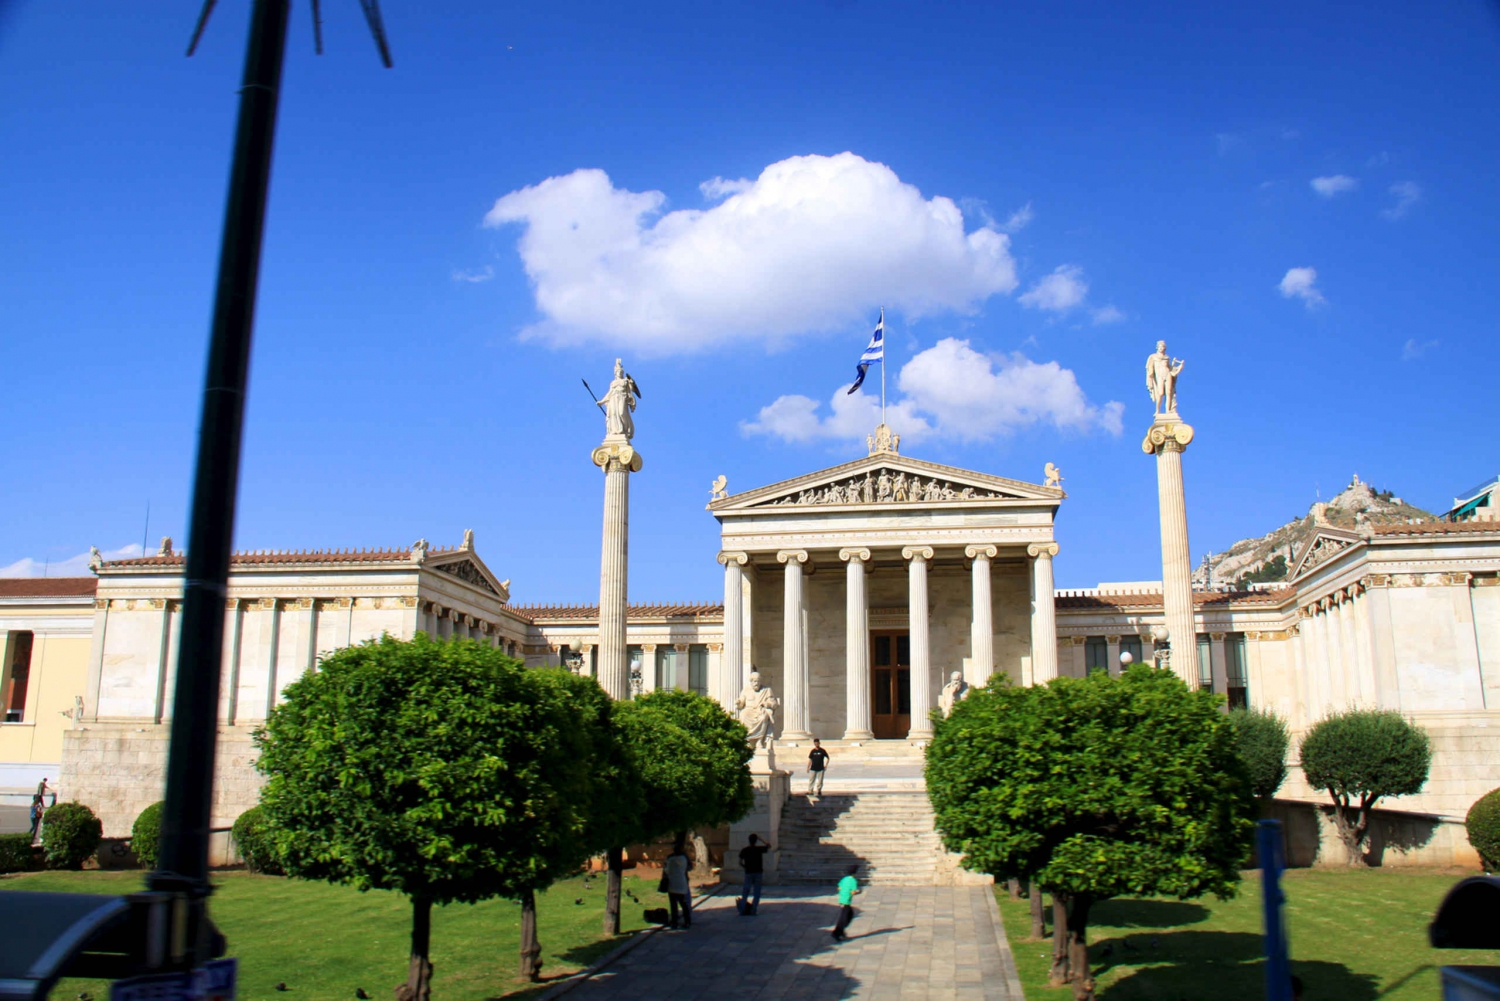 Athens and Acropolis Afternoon Tour including Entry Tickets